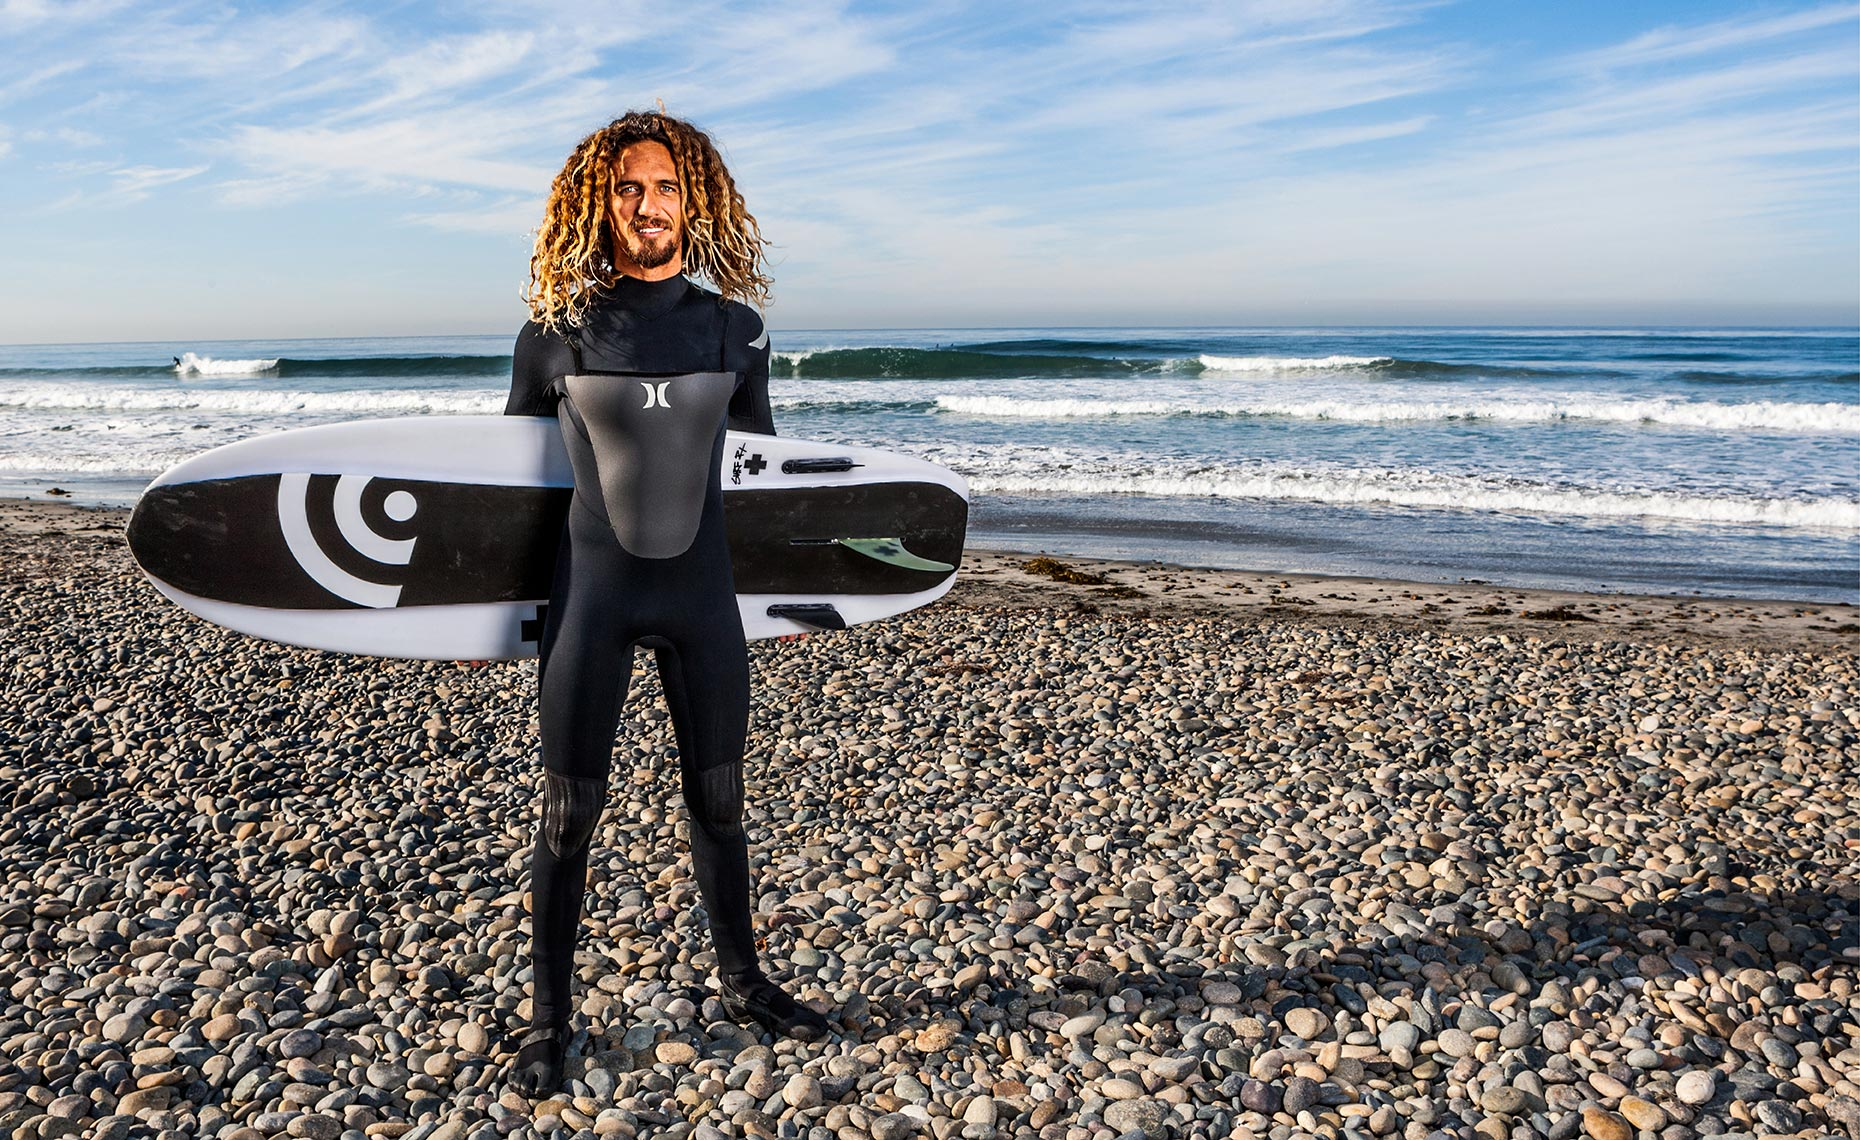 19_Rob_Machado_Seaside_Solana_Beach_California_Every_Third_Thursday_Portrait_Lifestyle_Chris_Wellhausen_Photography.JPG